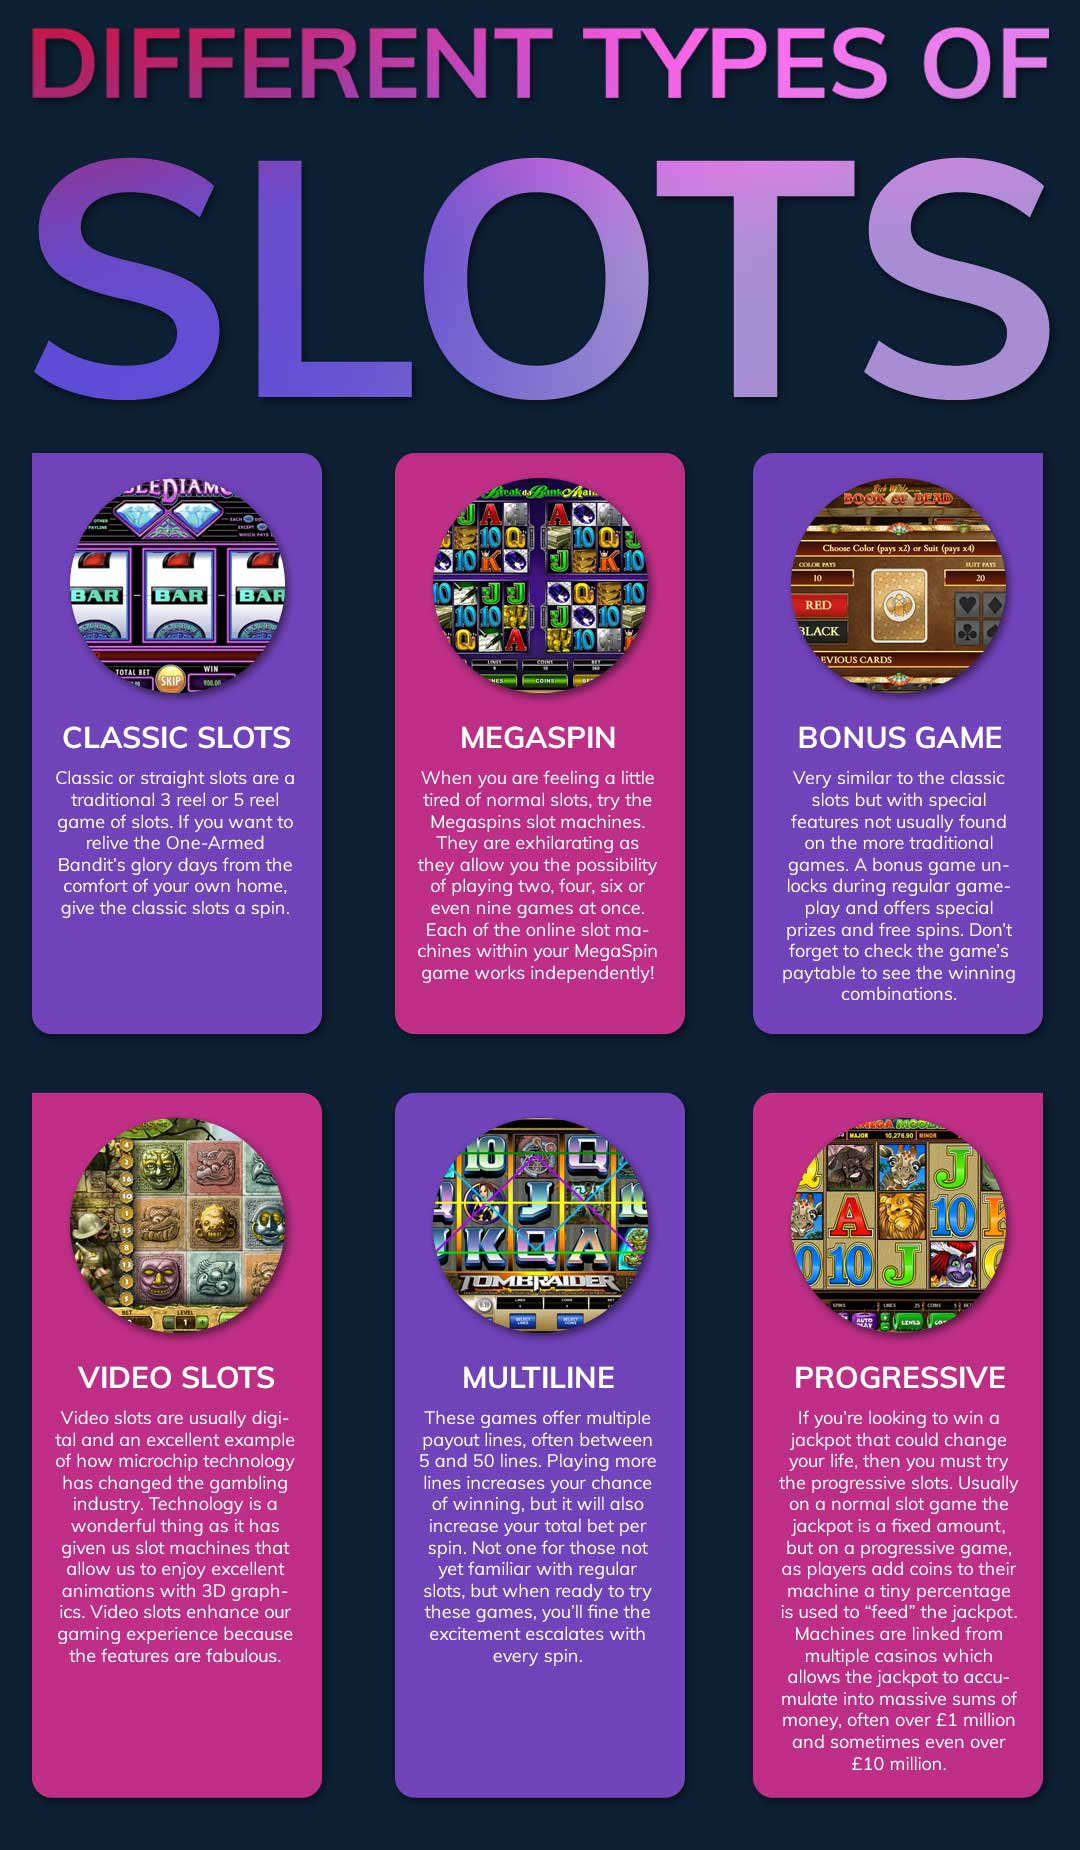 Different Types of Slots